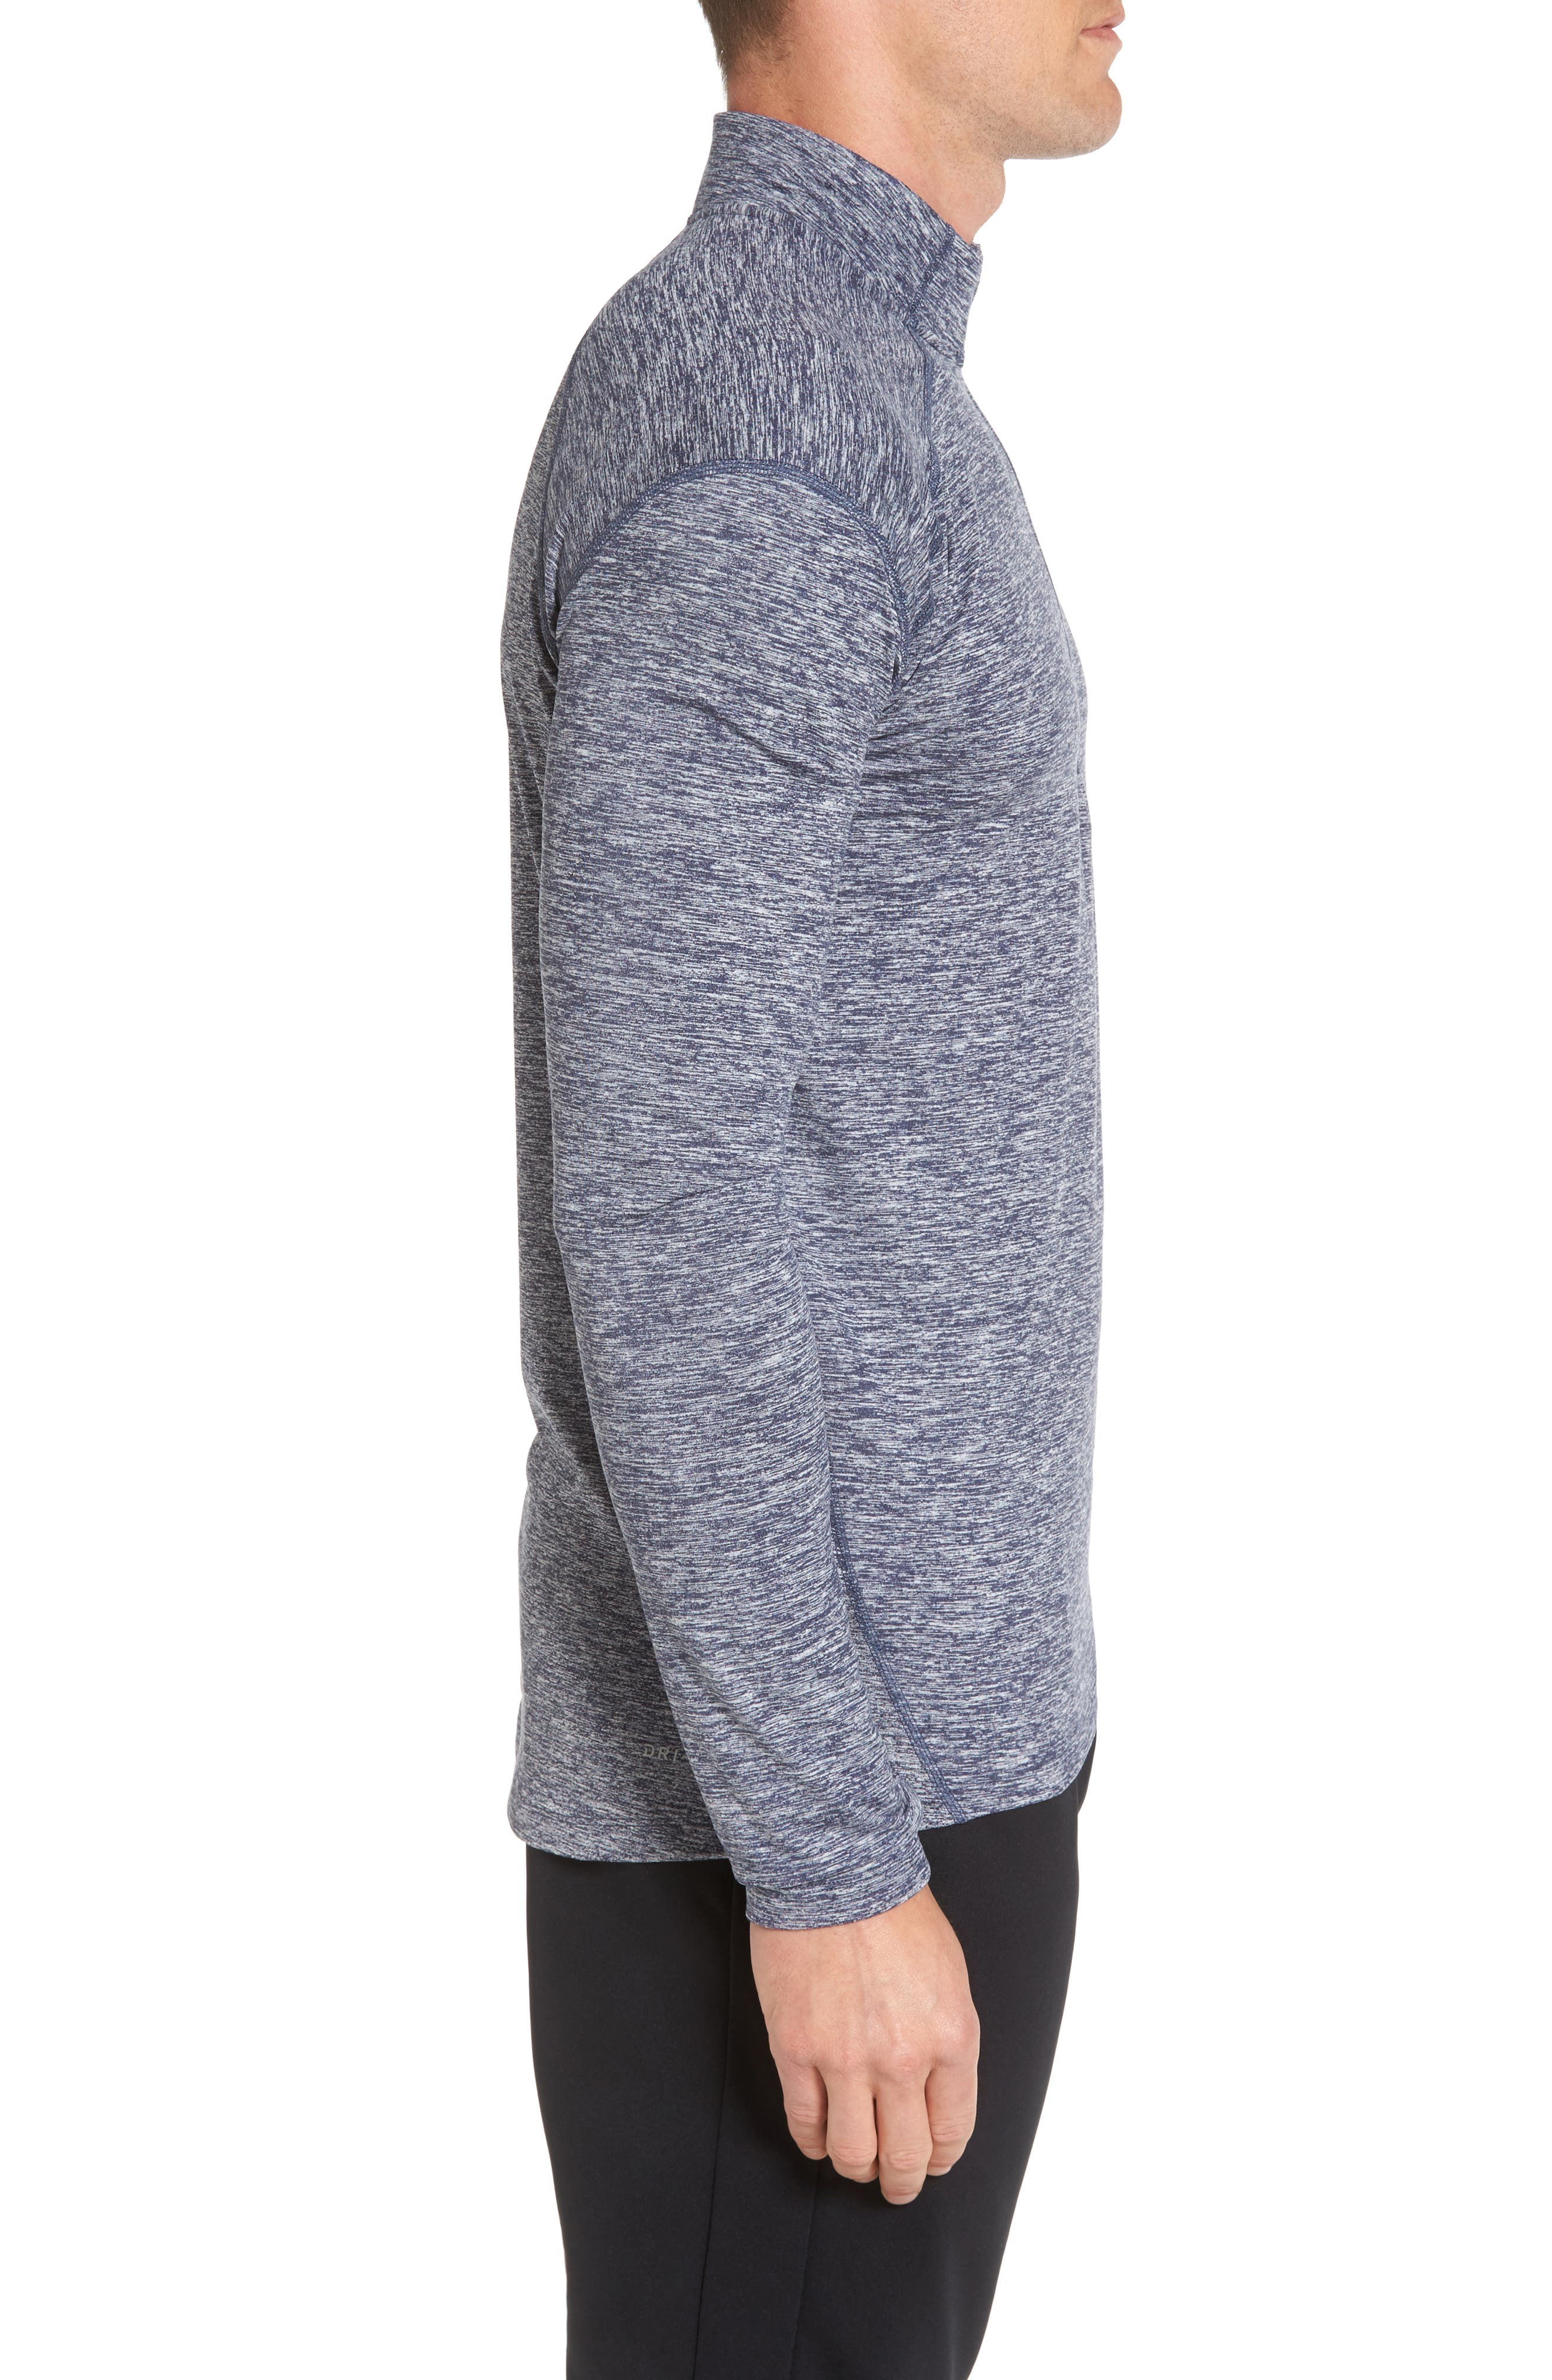 Dry Element Running Top,                             Alternate thumbnail 21, color,